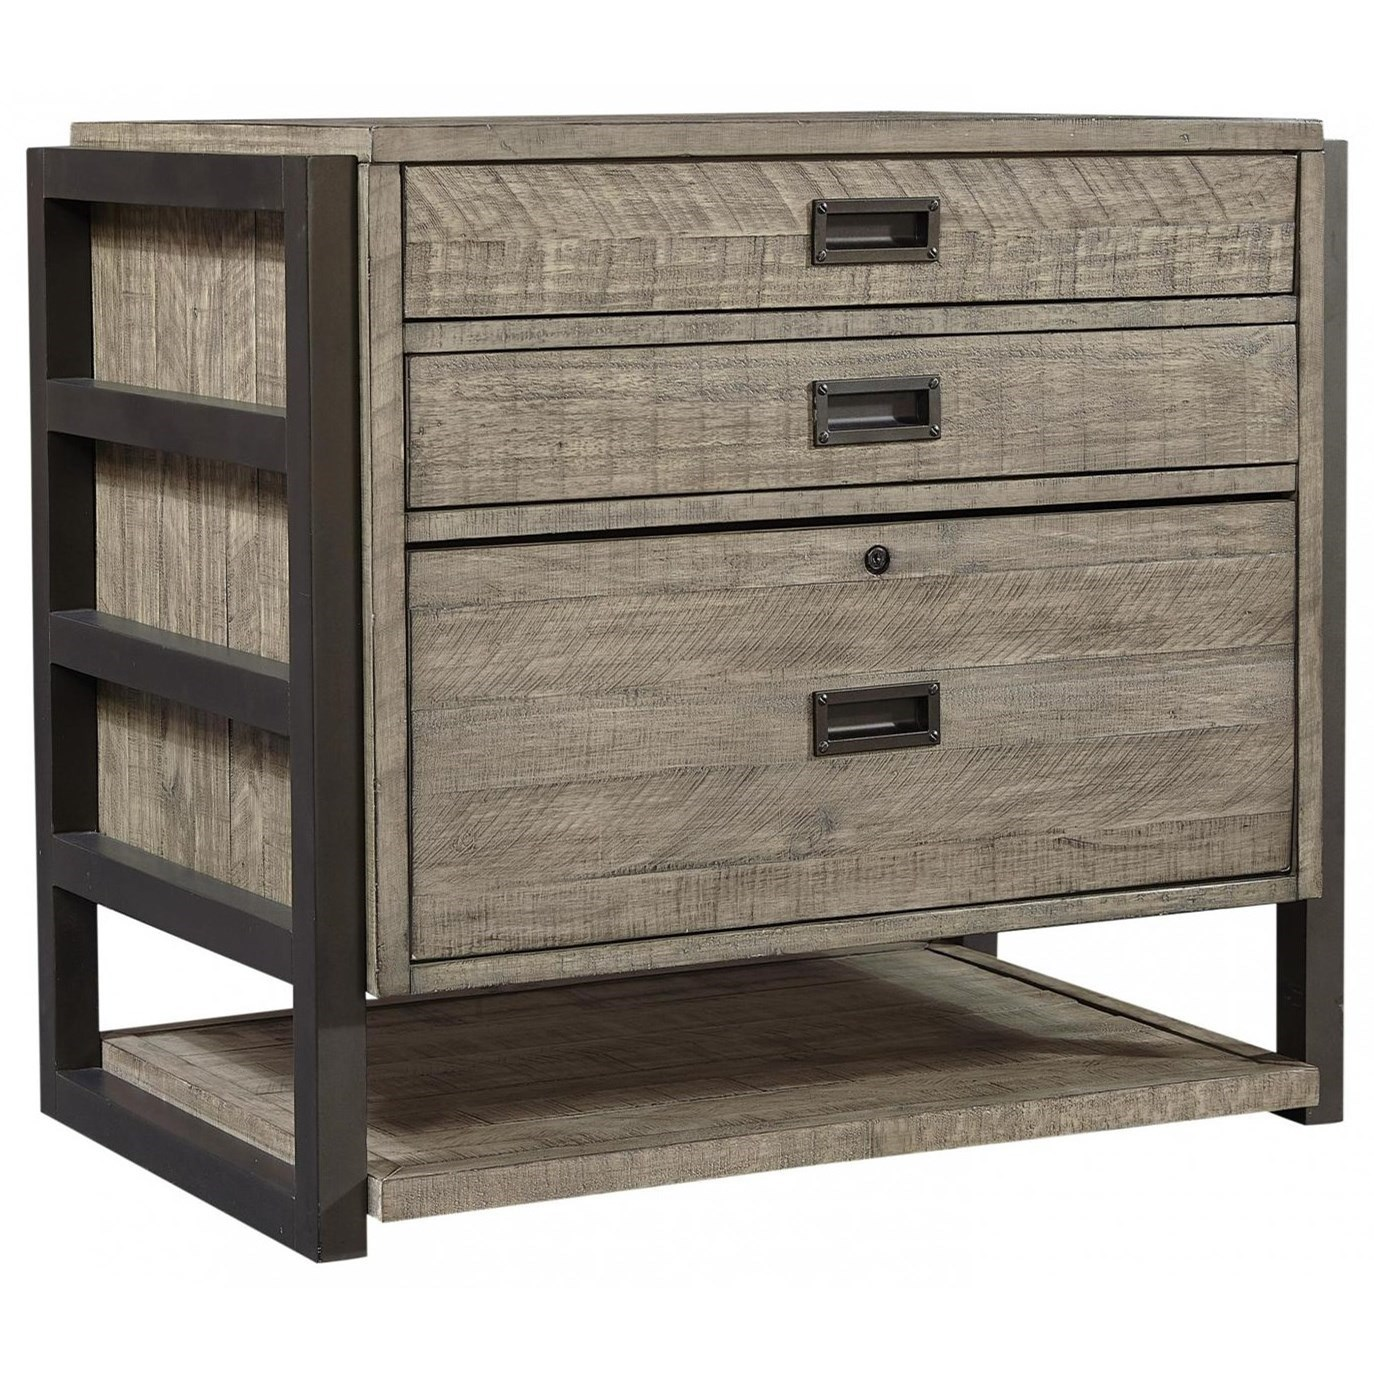 Grayson File Cabinet by Aspenhome at Walker's Furniture